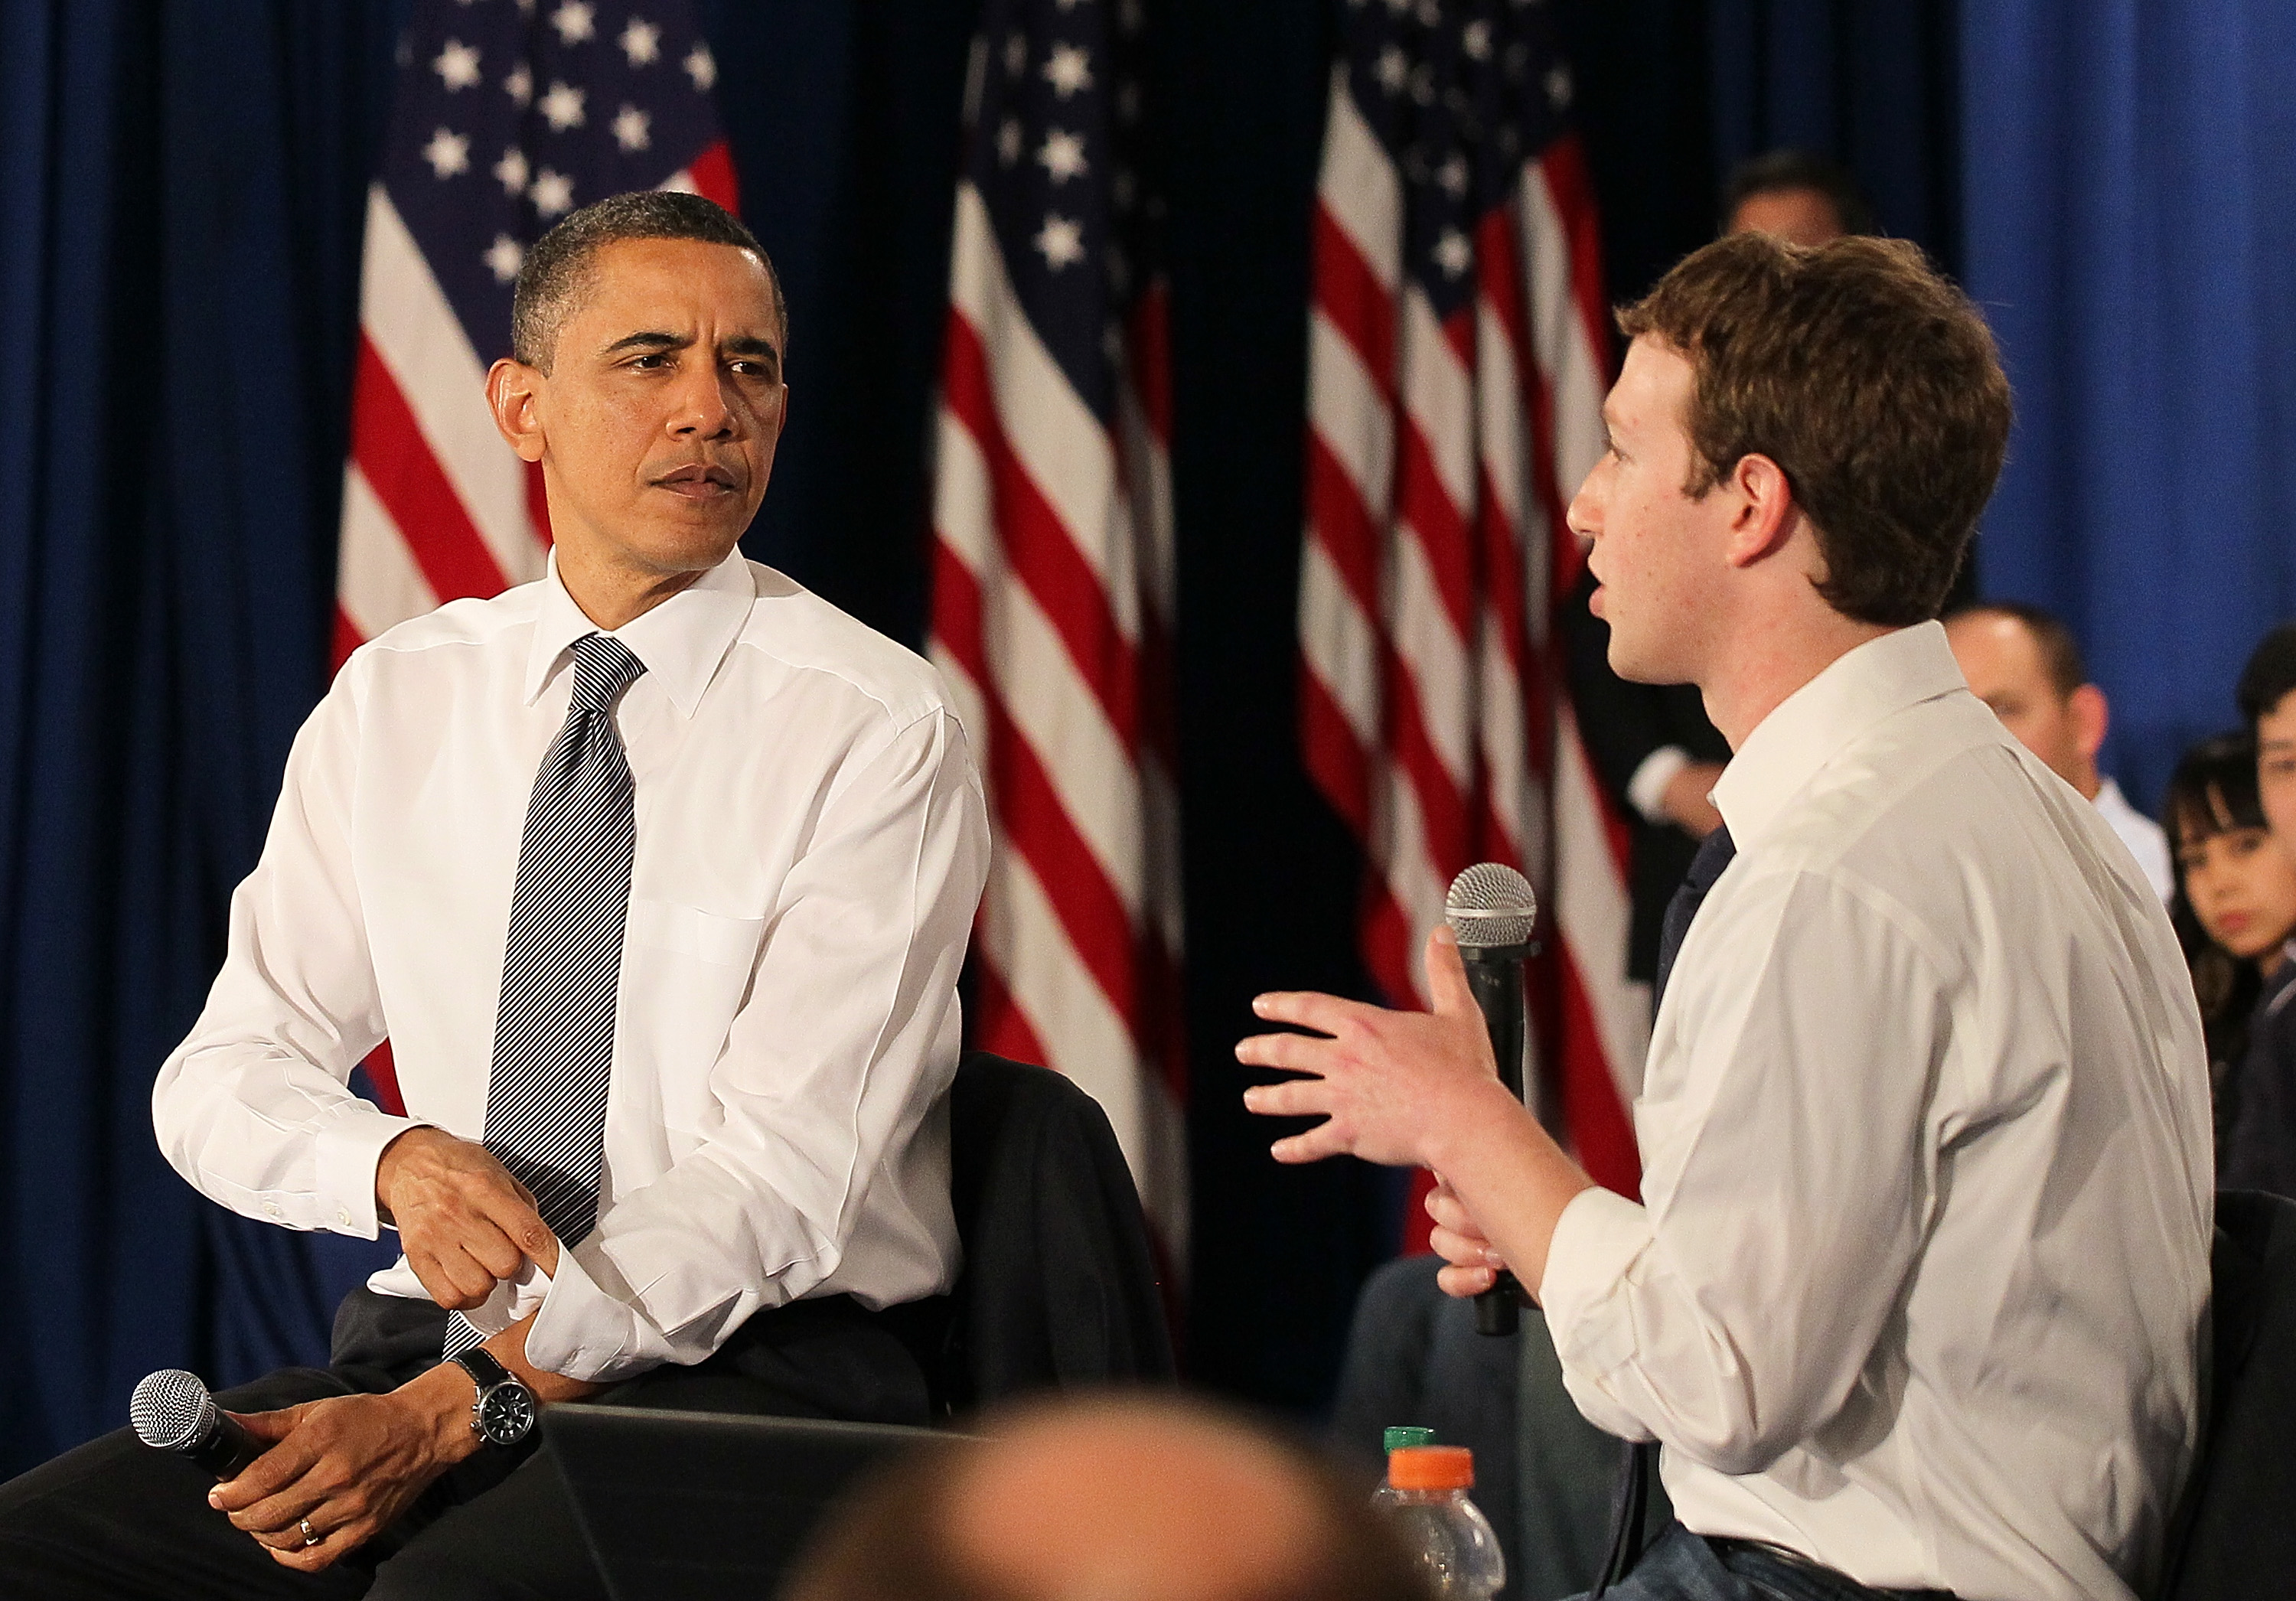 President Obama met with Mark Zuckerberg at Facebook headquarters in 2011 in Palo Alto. |  Justin Sullivan / Getty Images